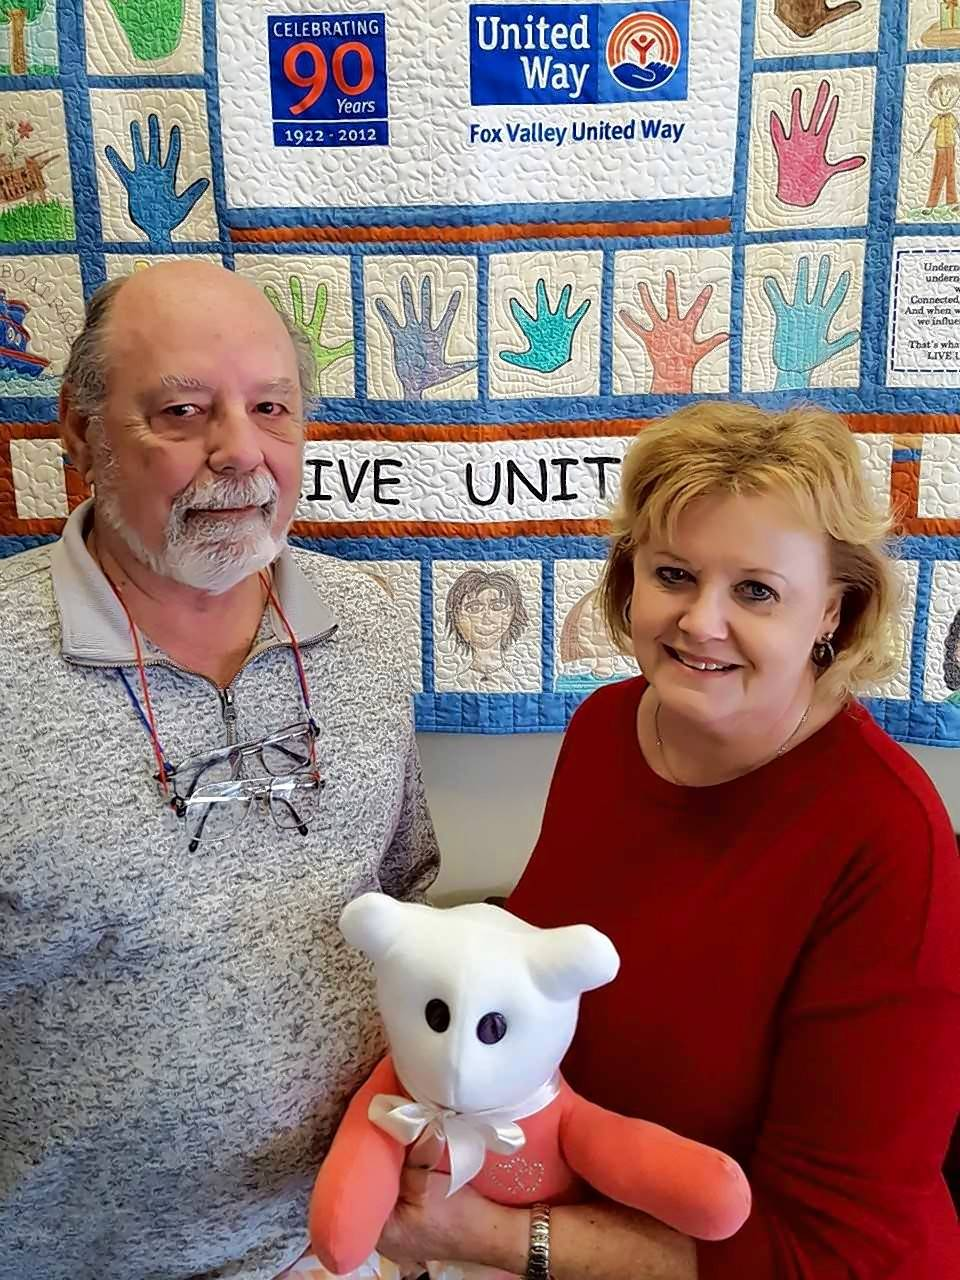 Mike and Jen Reemts of Aurora were the first couple named the Fox Valley United Way's Volunteers of the Year. They help with the organization's holiday assistance program for local families. Jen also sews bears, middle, made from sentimental shirts and clothing from deceased loved ones for the Fox Valley Hands of Hope.